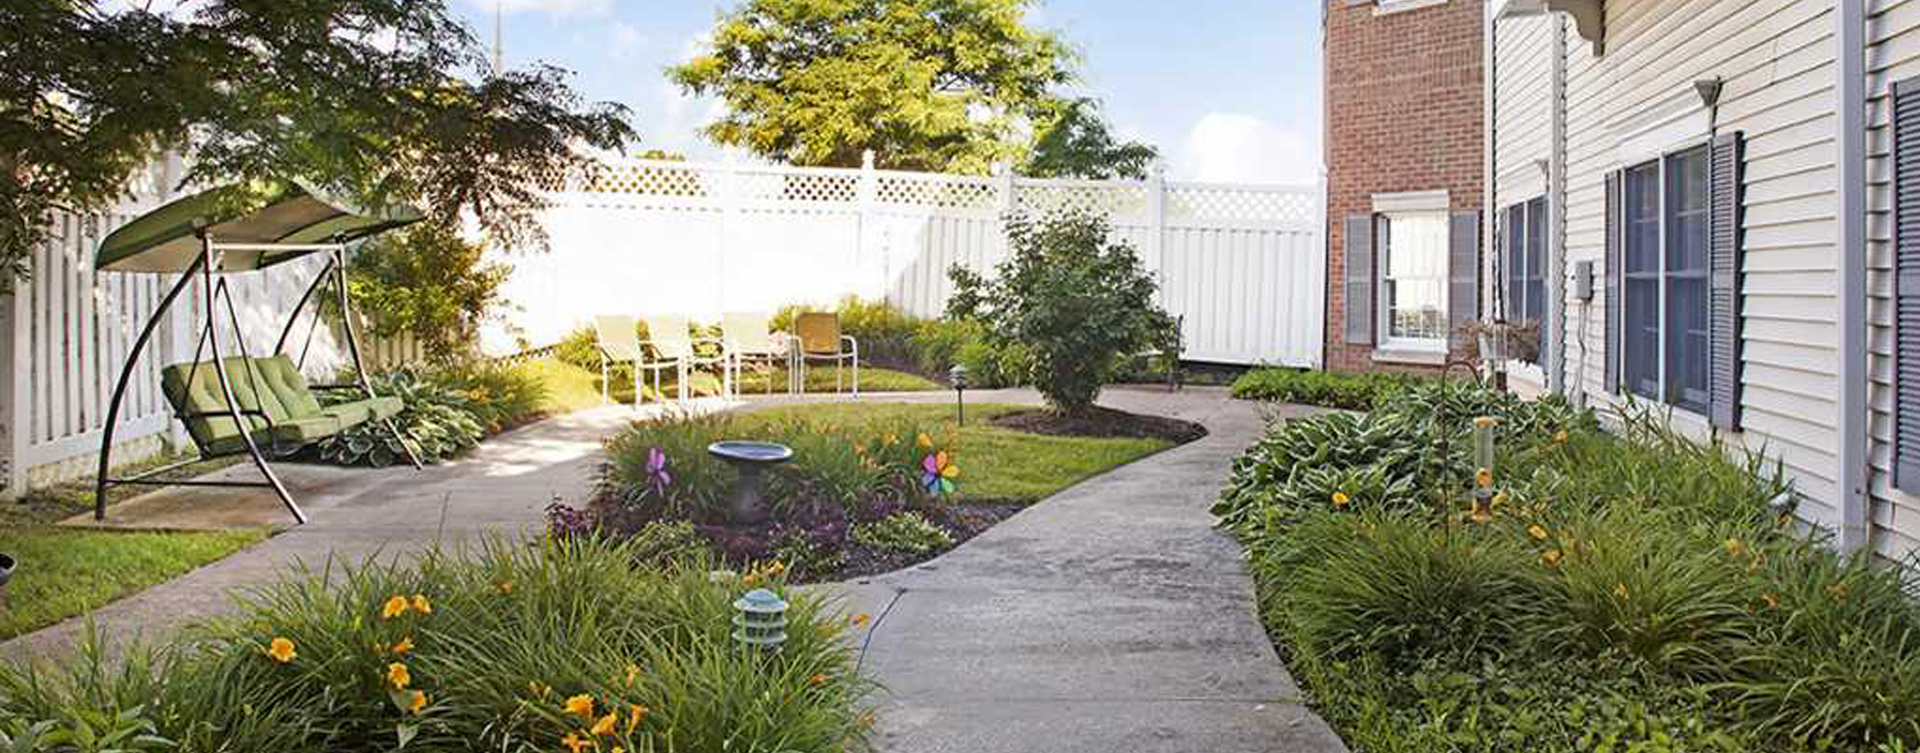 Enjoy bird watching, gardening and barbecuing in our courtyard at Bickford of Rocky River